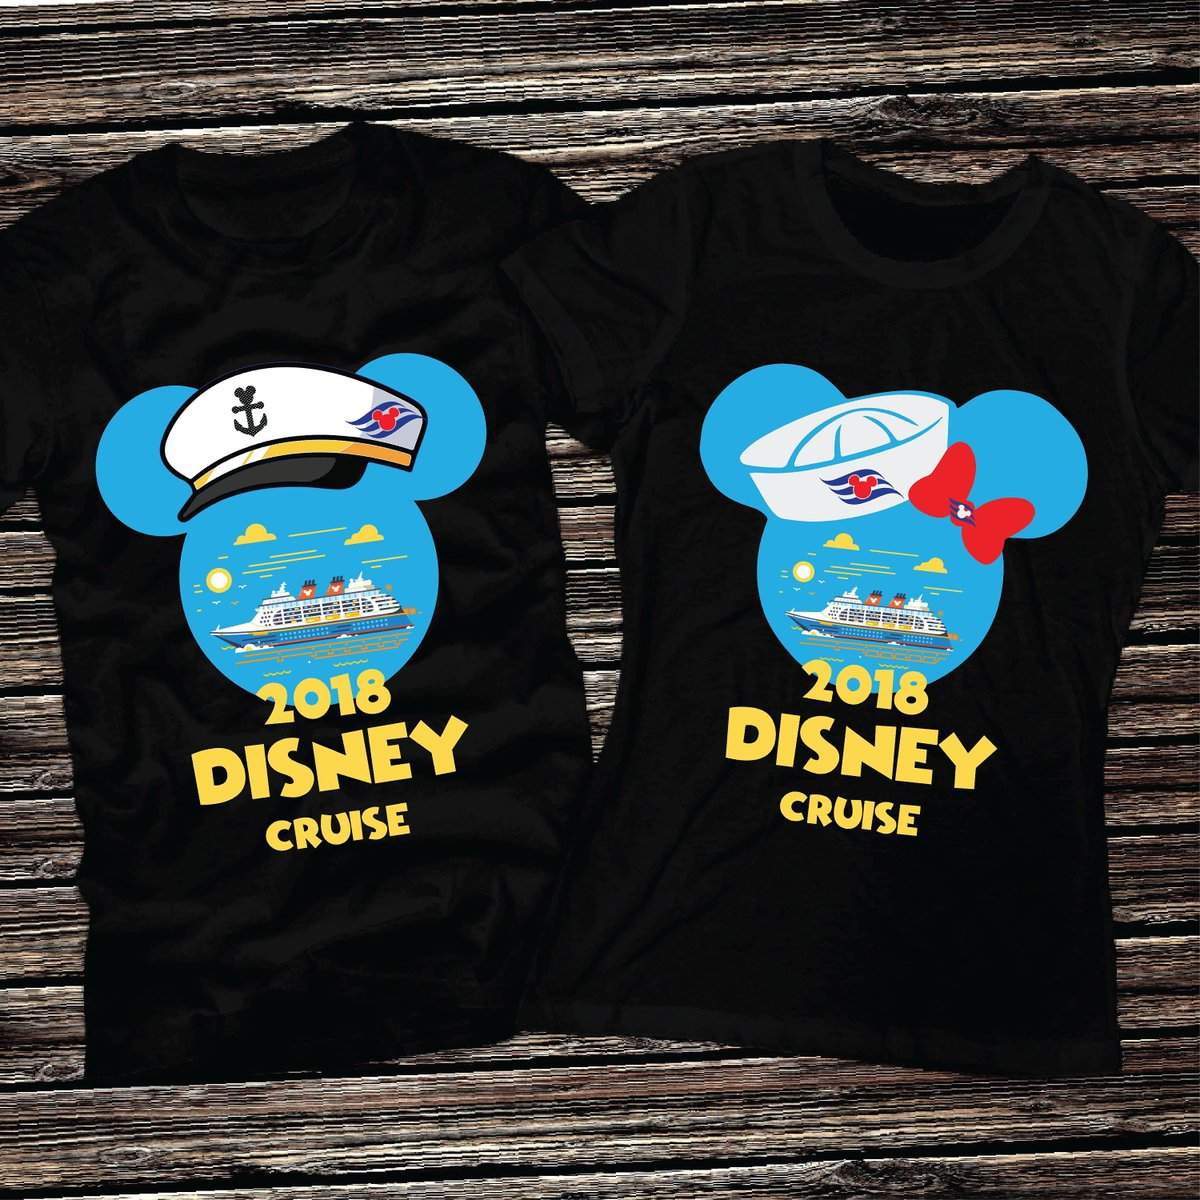 ad456093d ... Disney Cruise Shirts 2018~Cruise Mickey and Minnie Shirts 2018~Disney  Couple Cruise Shirts 2018~Disney Matching Shirts For Disney Cruise ...